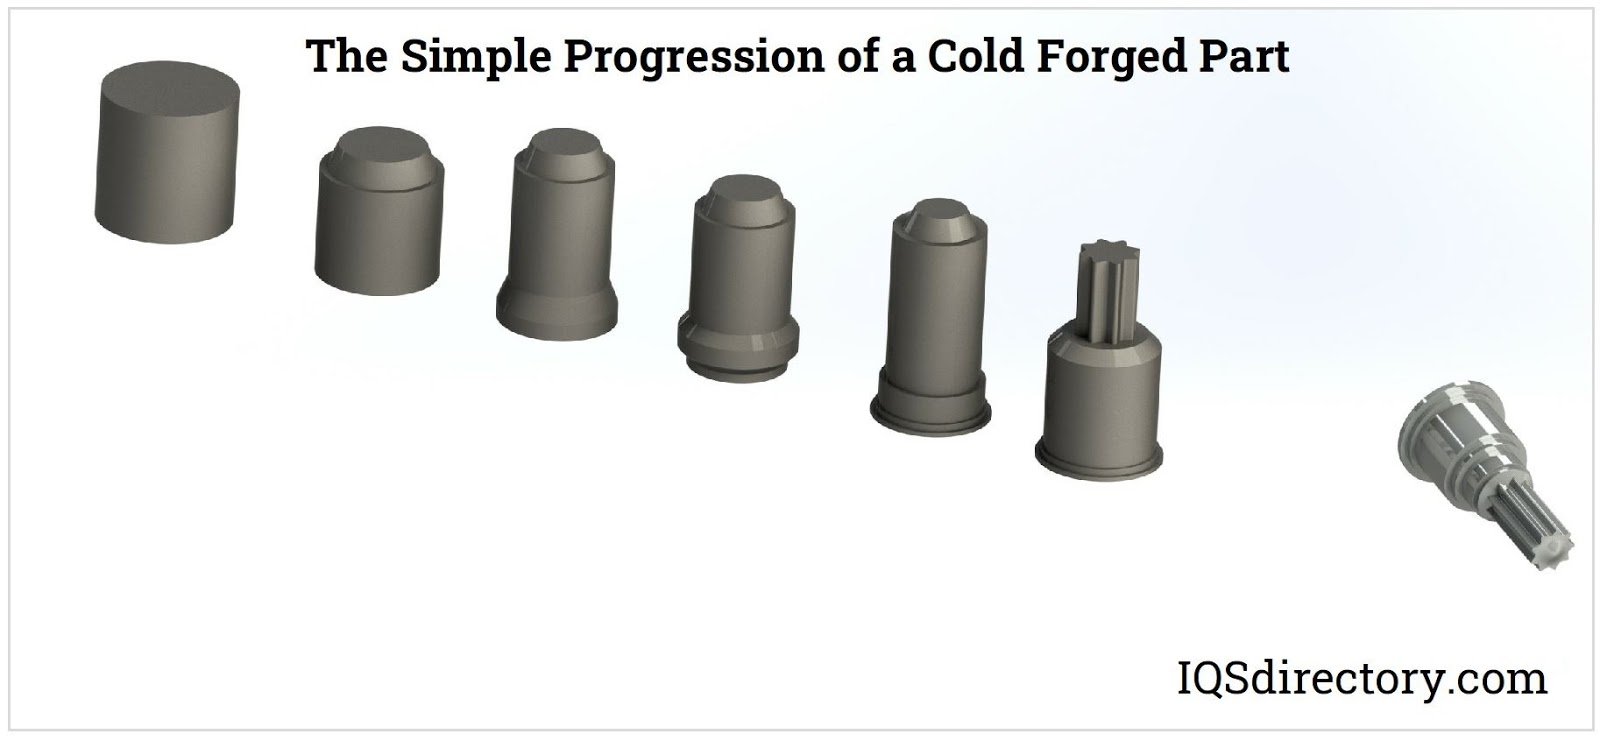 Progression of a Cold Forged Part